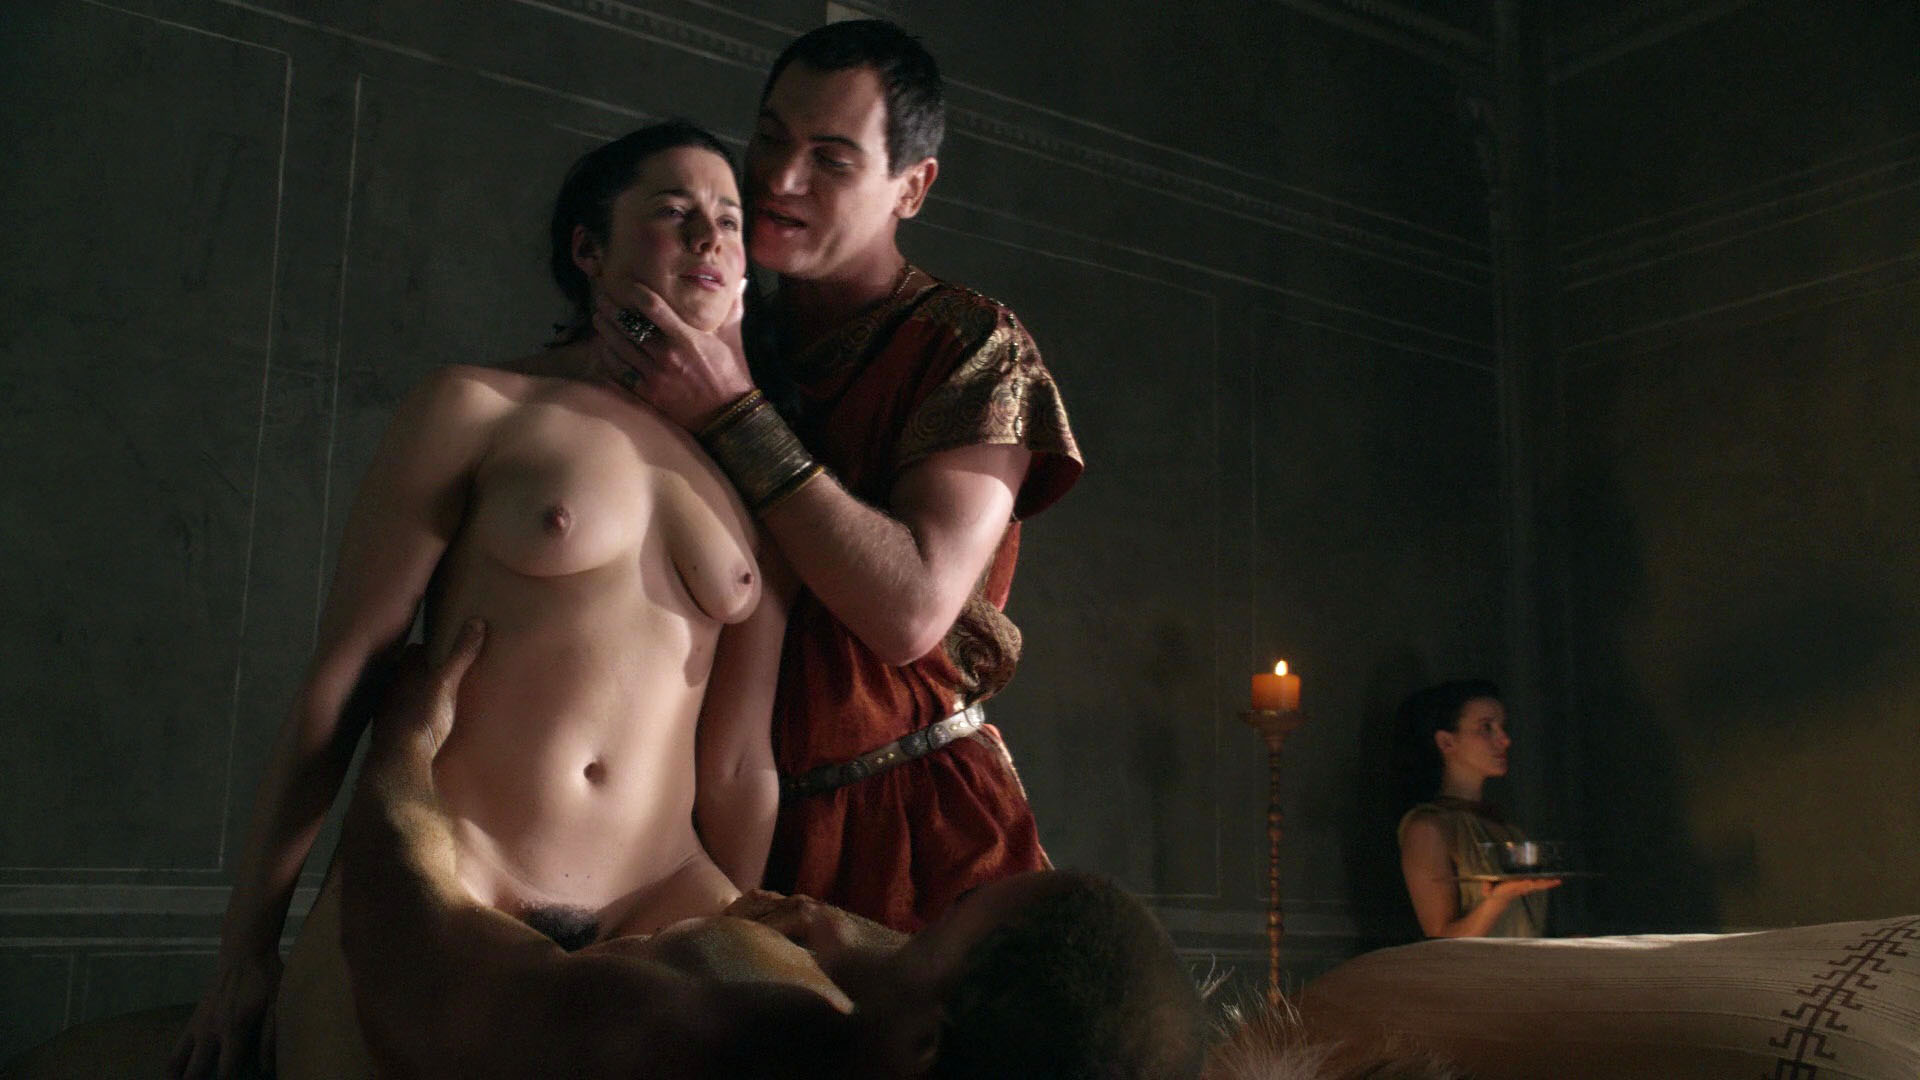 Jessica Grace Smith, Lesley-Ann Brandt – Spartacus. Gods of the Arena s01e03 (2011) HD 1080p